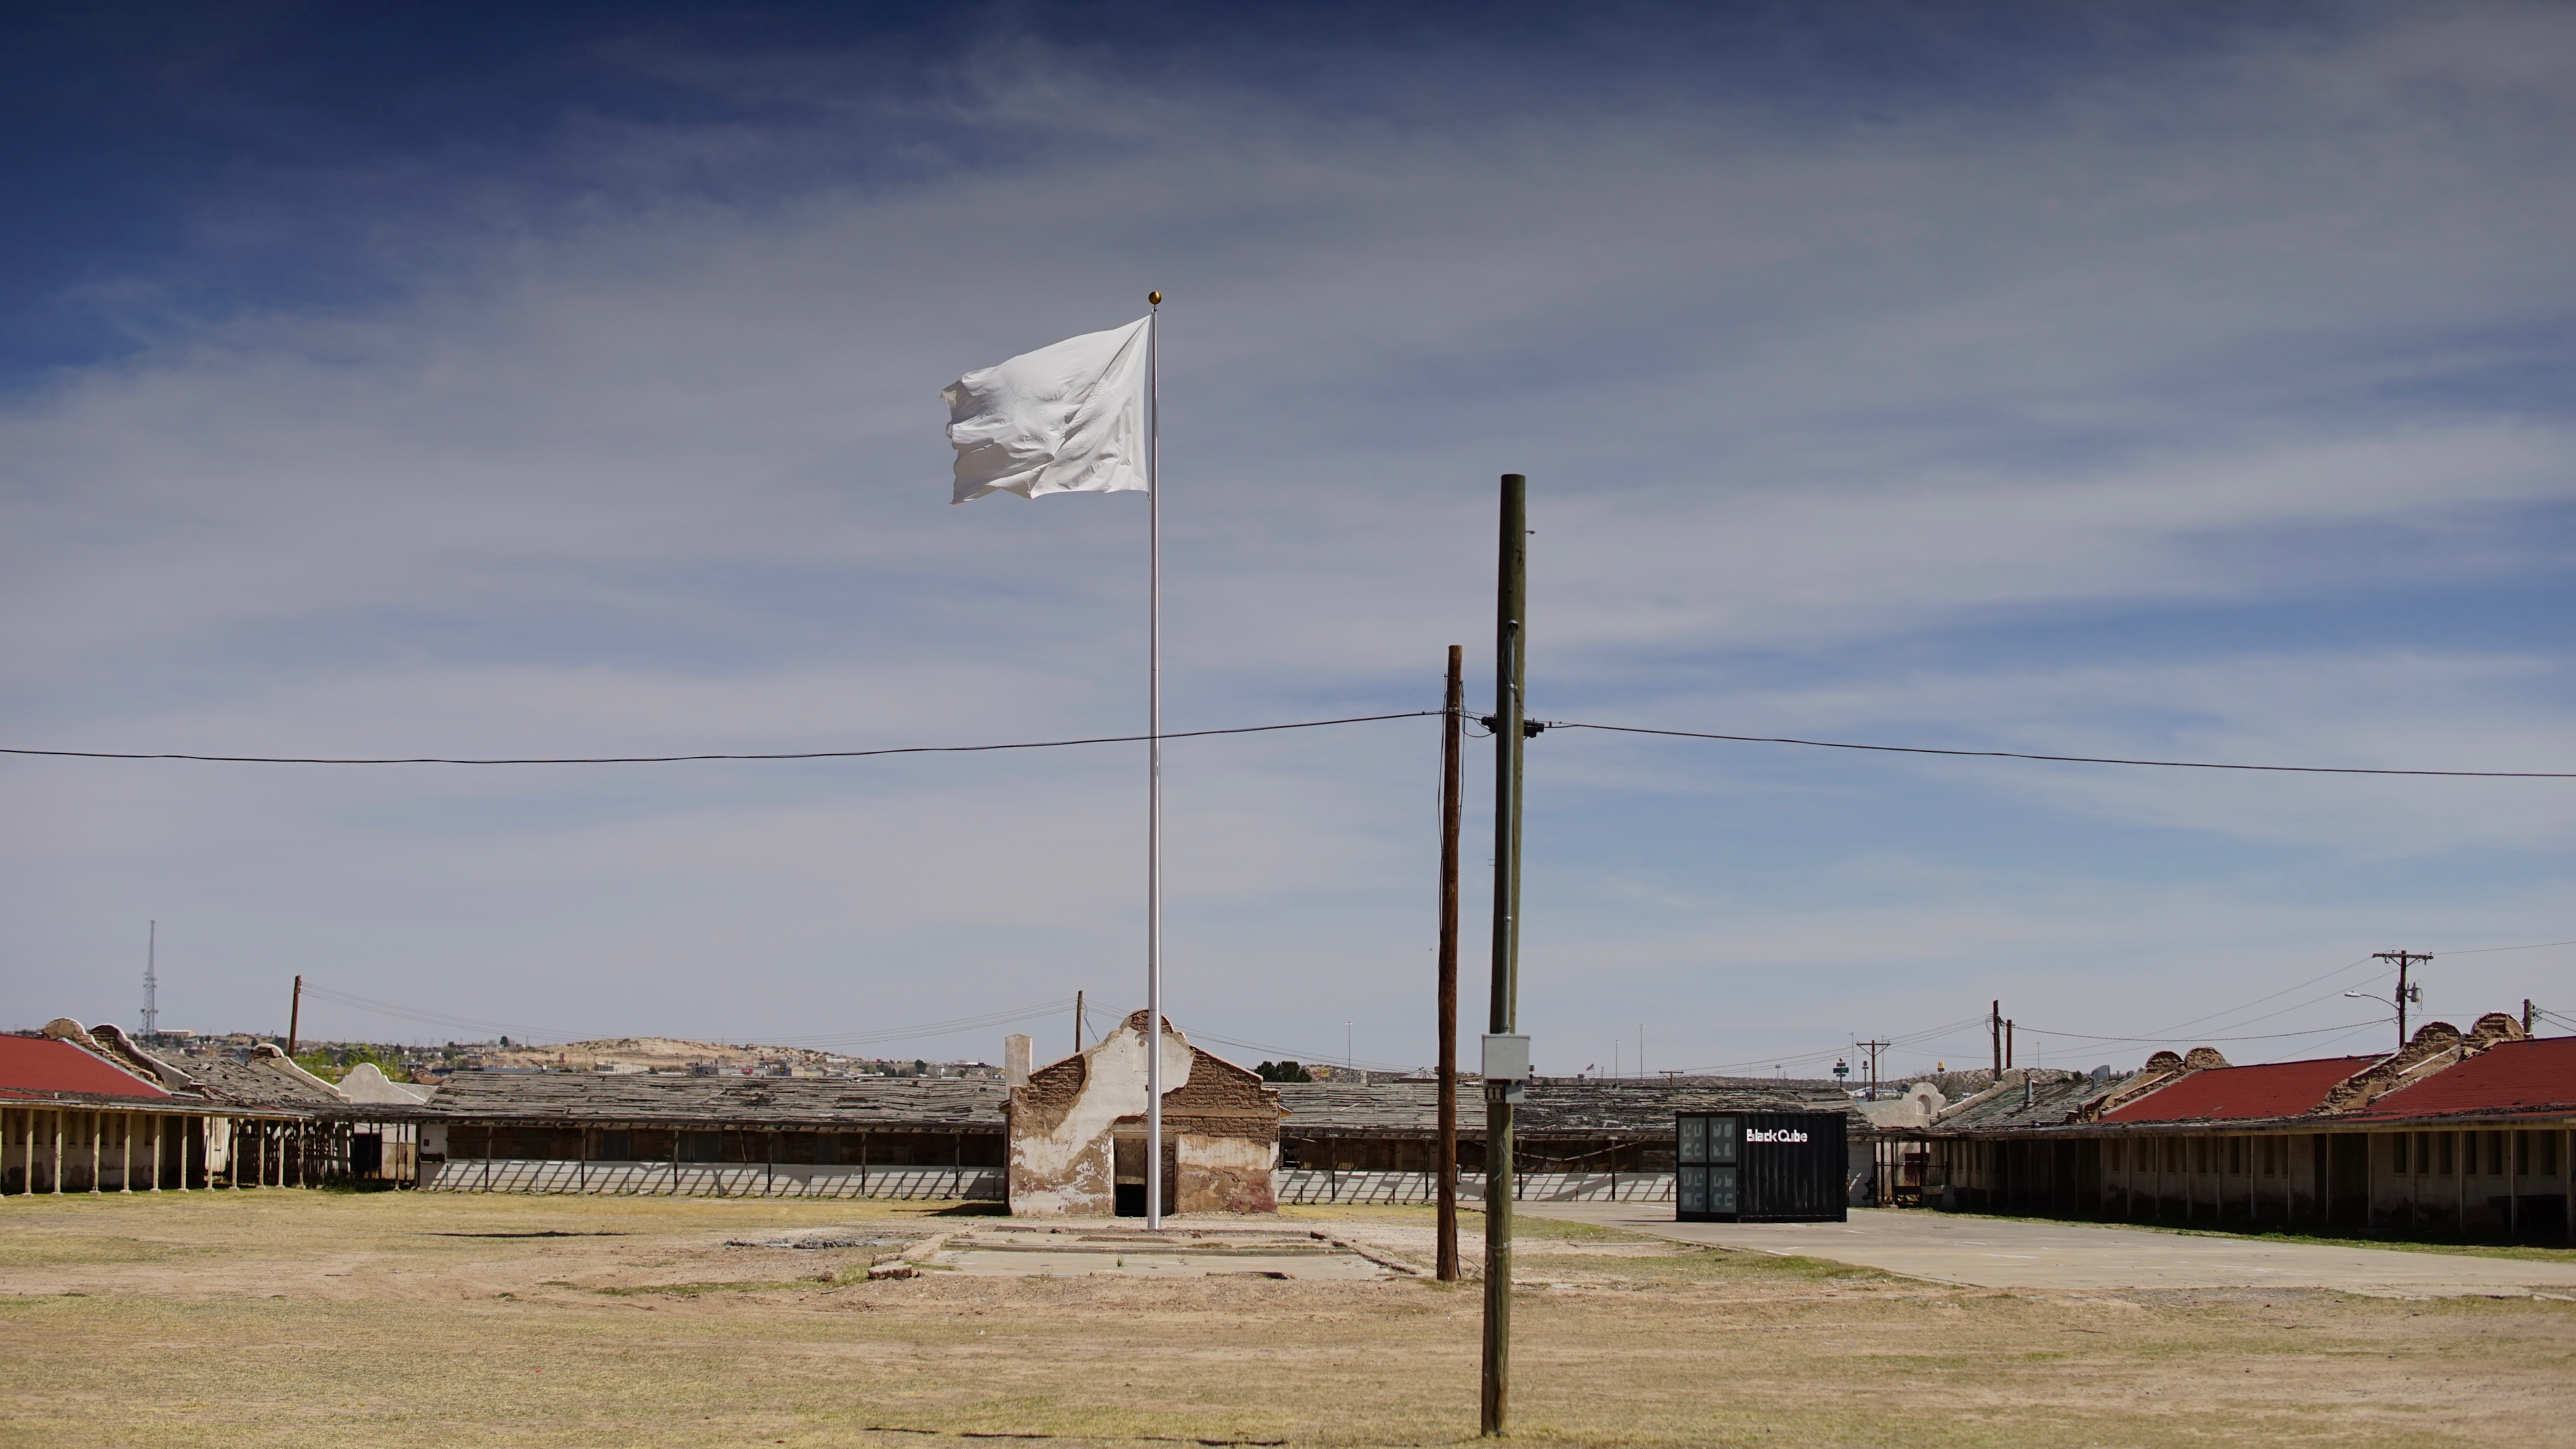 A white flag flies atop a 60-foot tall flag pole in an empty area in front of an out-of-use building